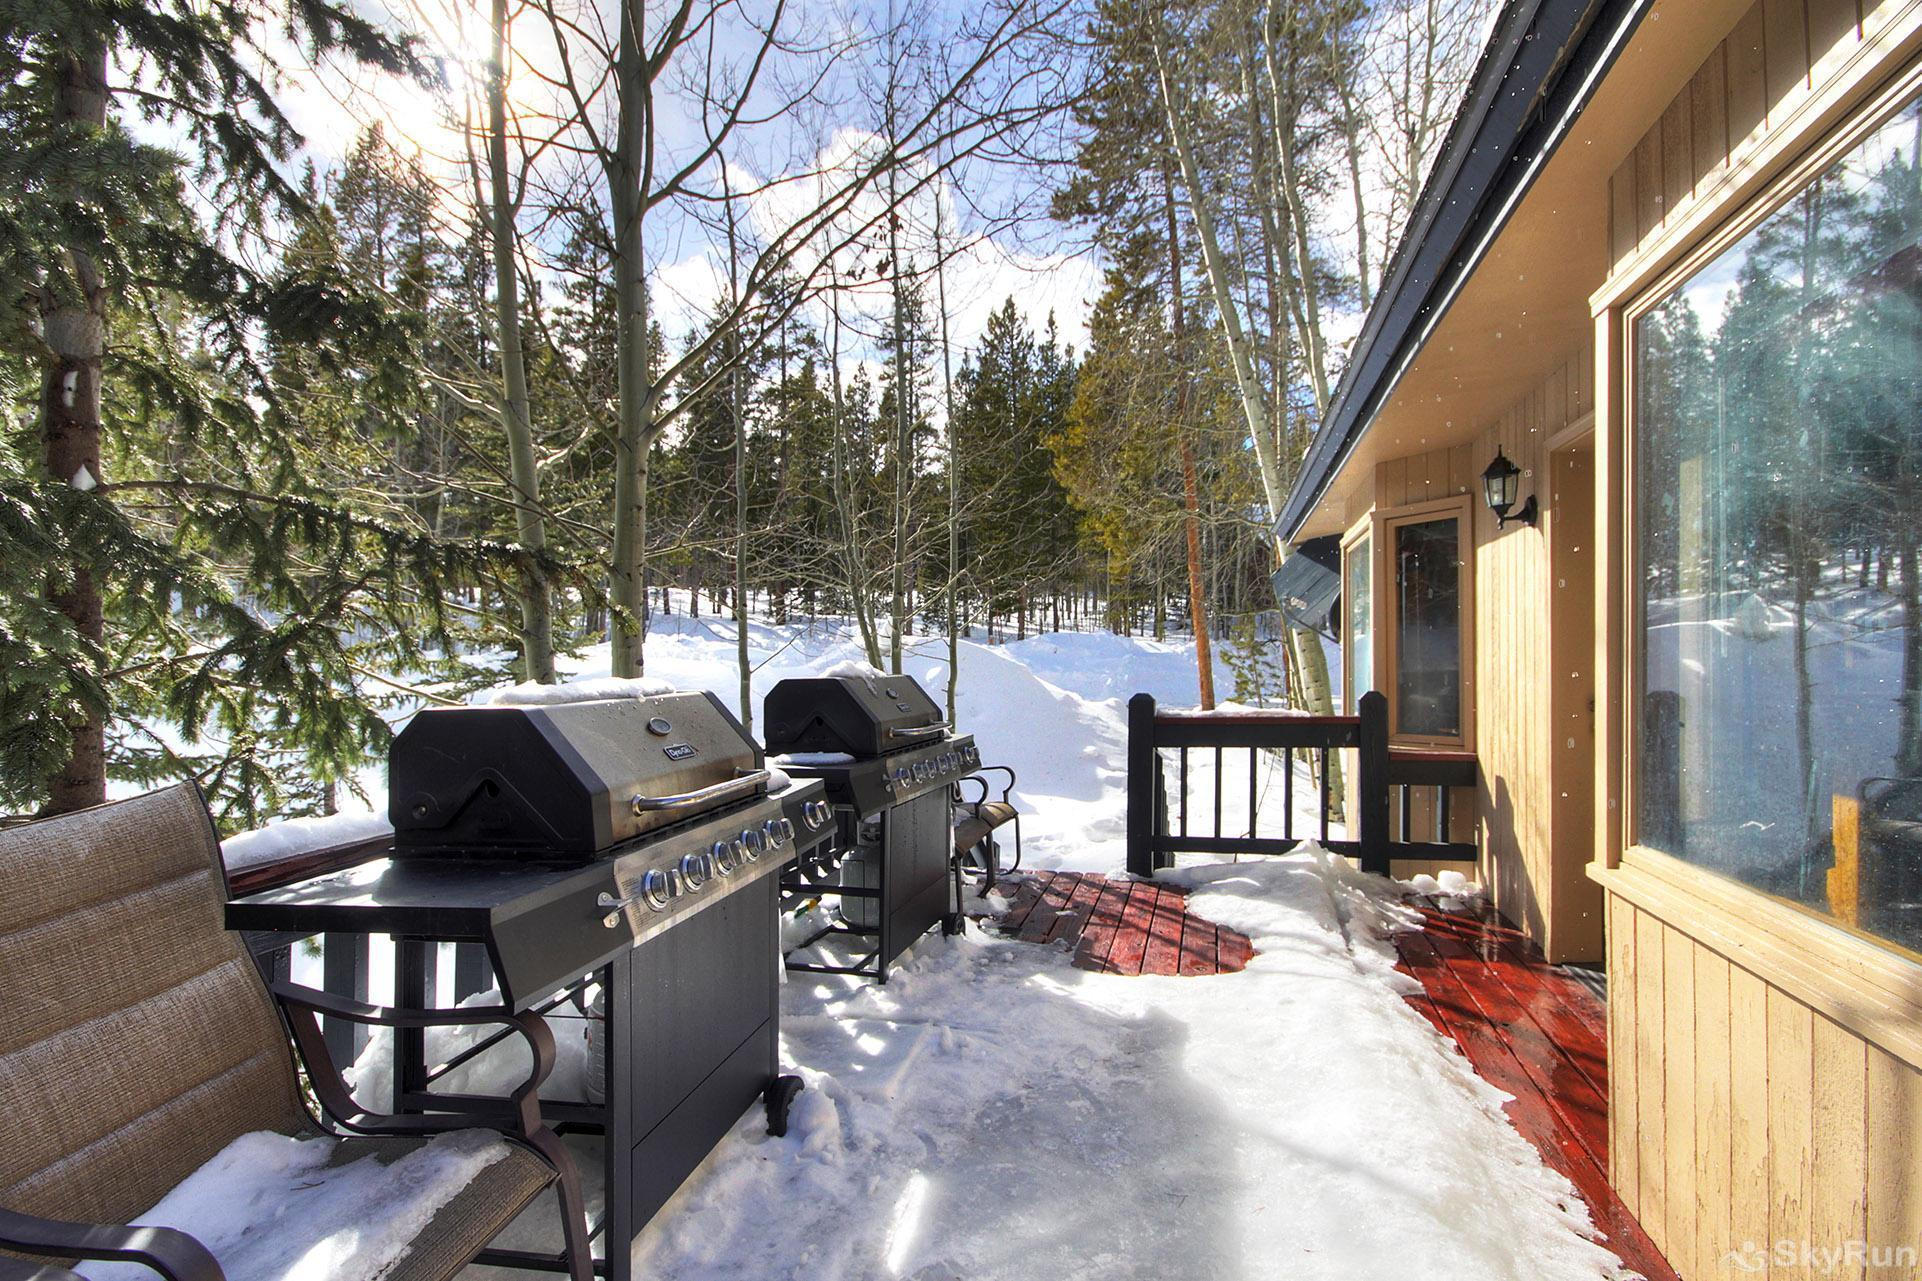 Gold King Lodge Deck with 2 Propane BBQs